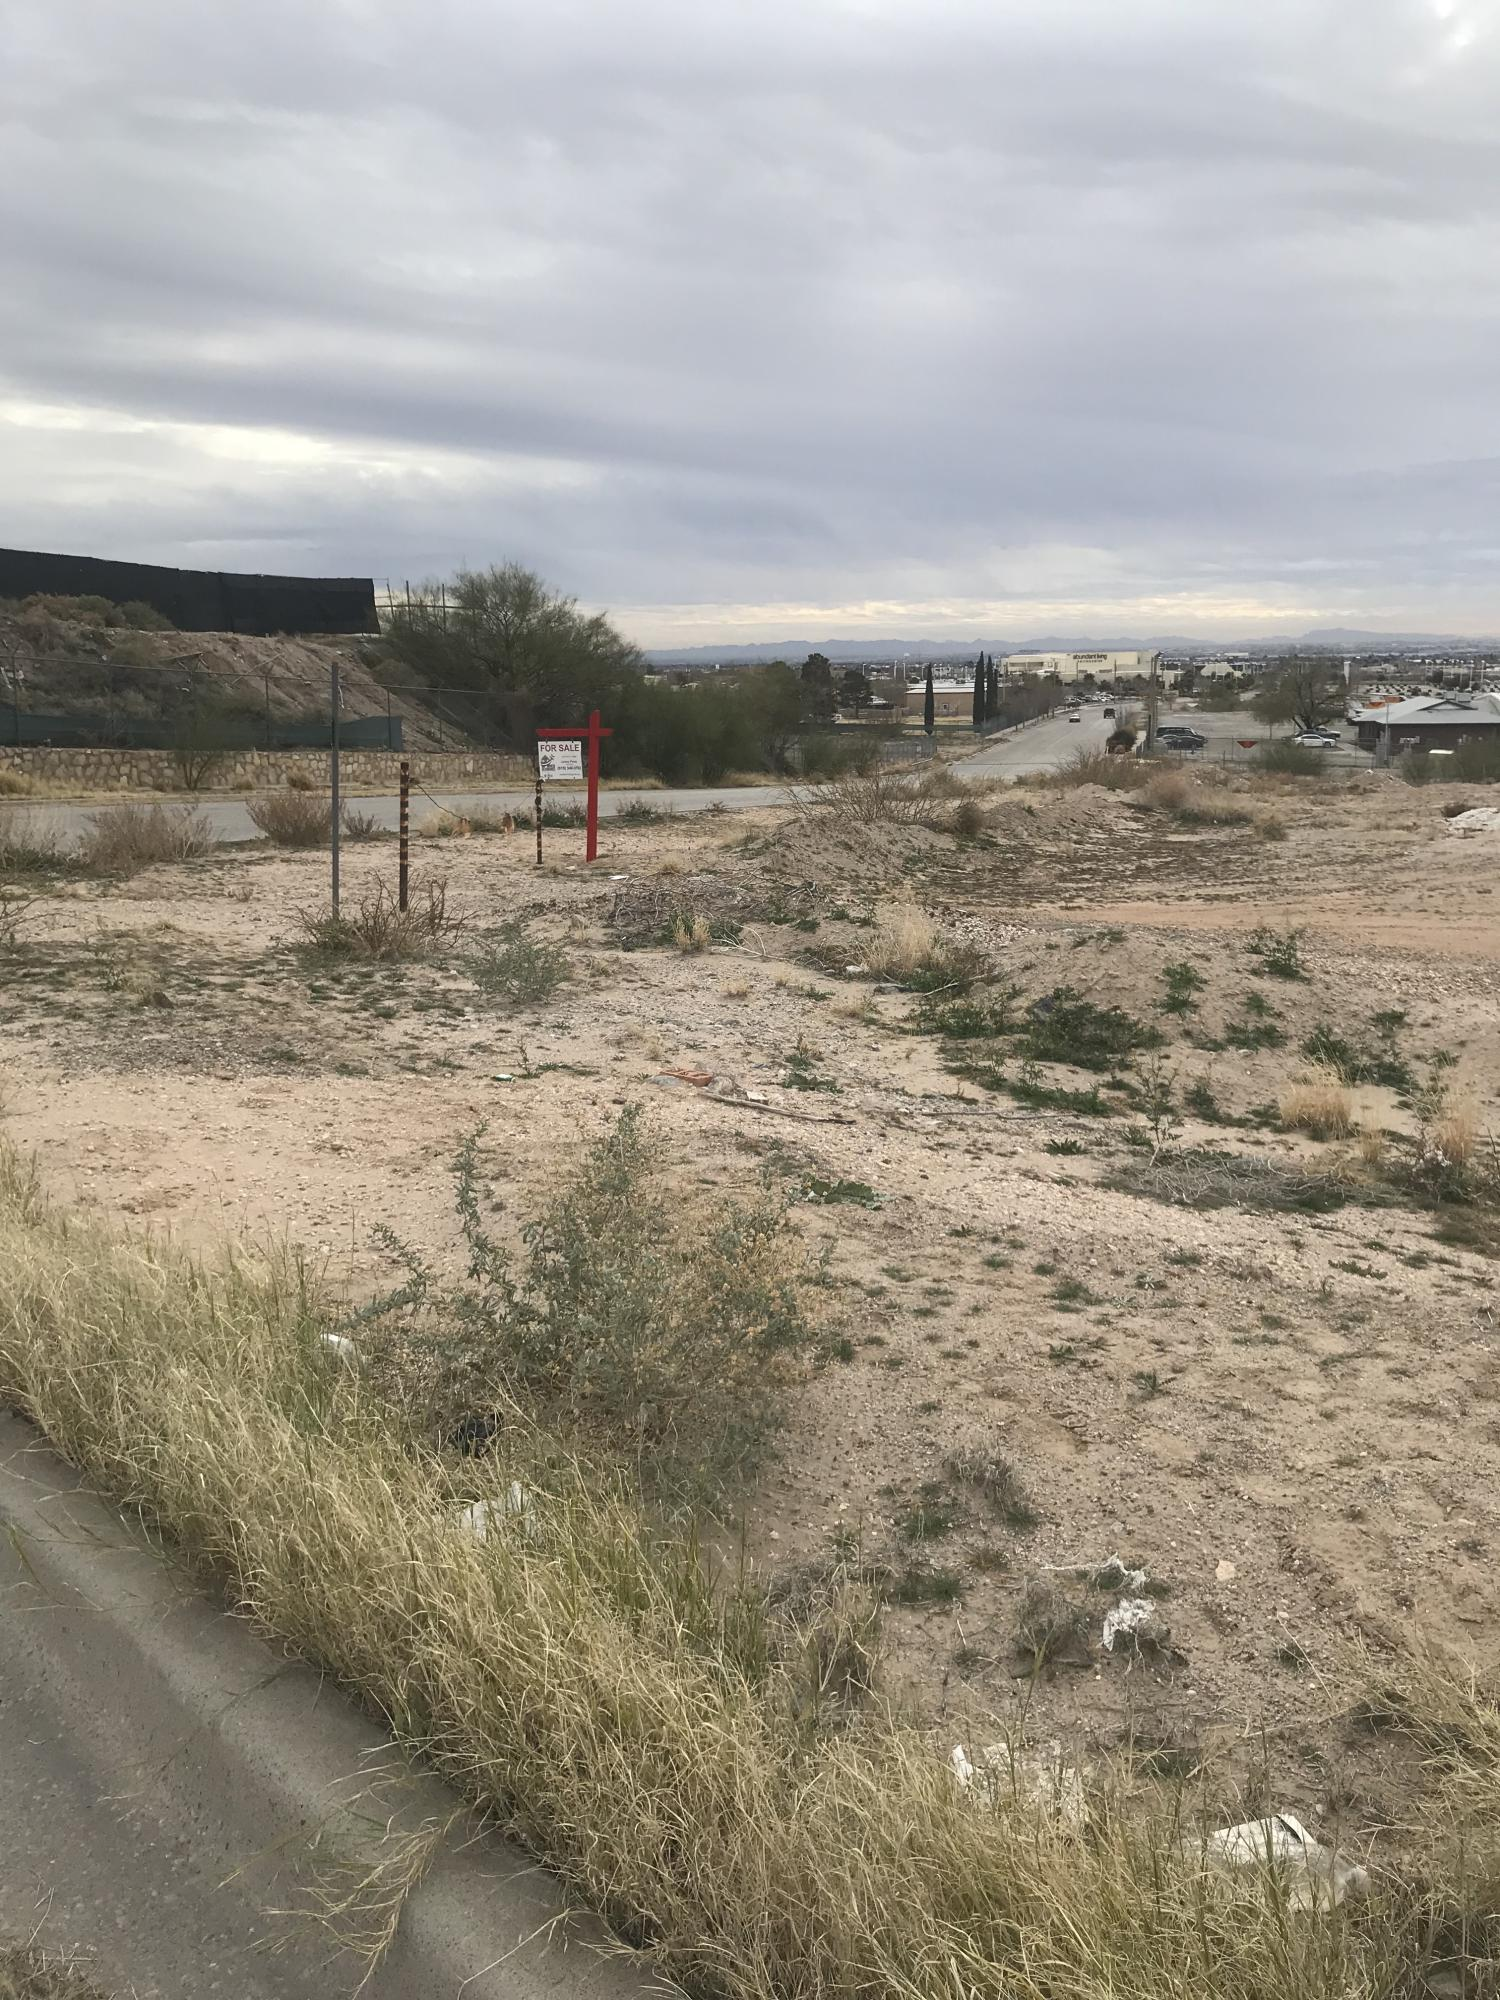 1175 VALLEY CREST Drive, El Paso, Texas 79907, ,Land,For sale,VALLEY CREST,801310